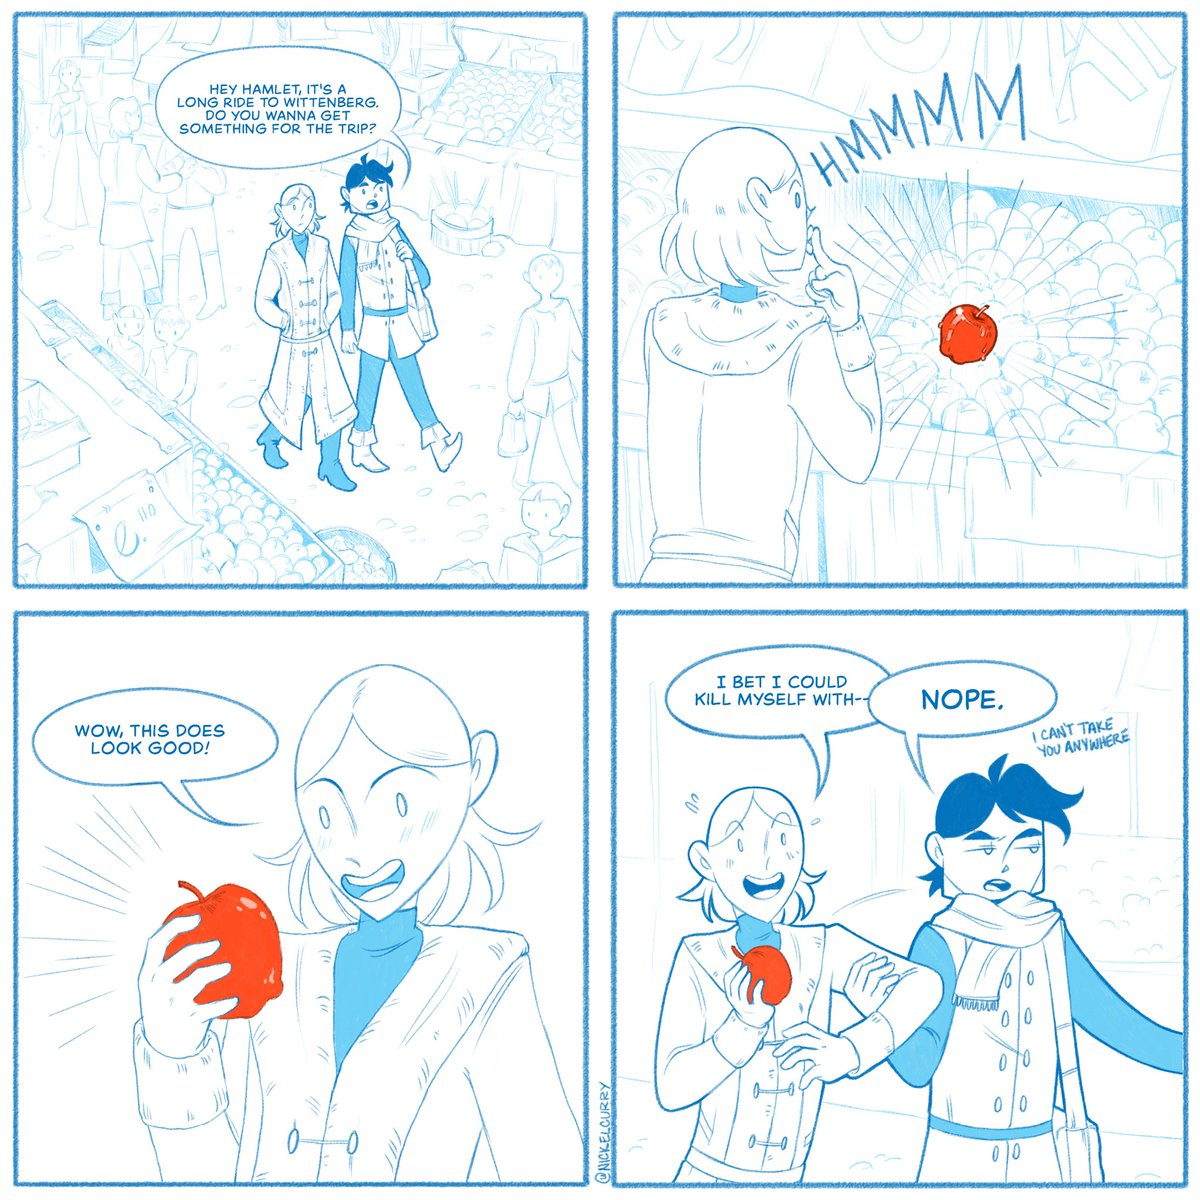 Hamlet is nothing if not resourceful.  #hamlet #shakespeare #webcomic https://t.co/yryEwAl7t9